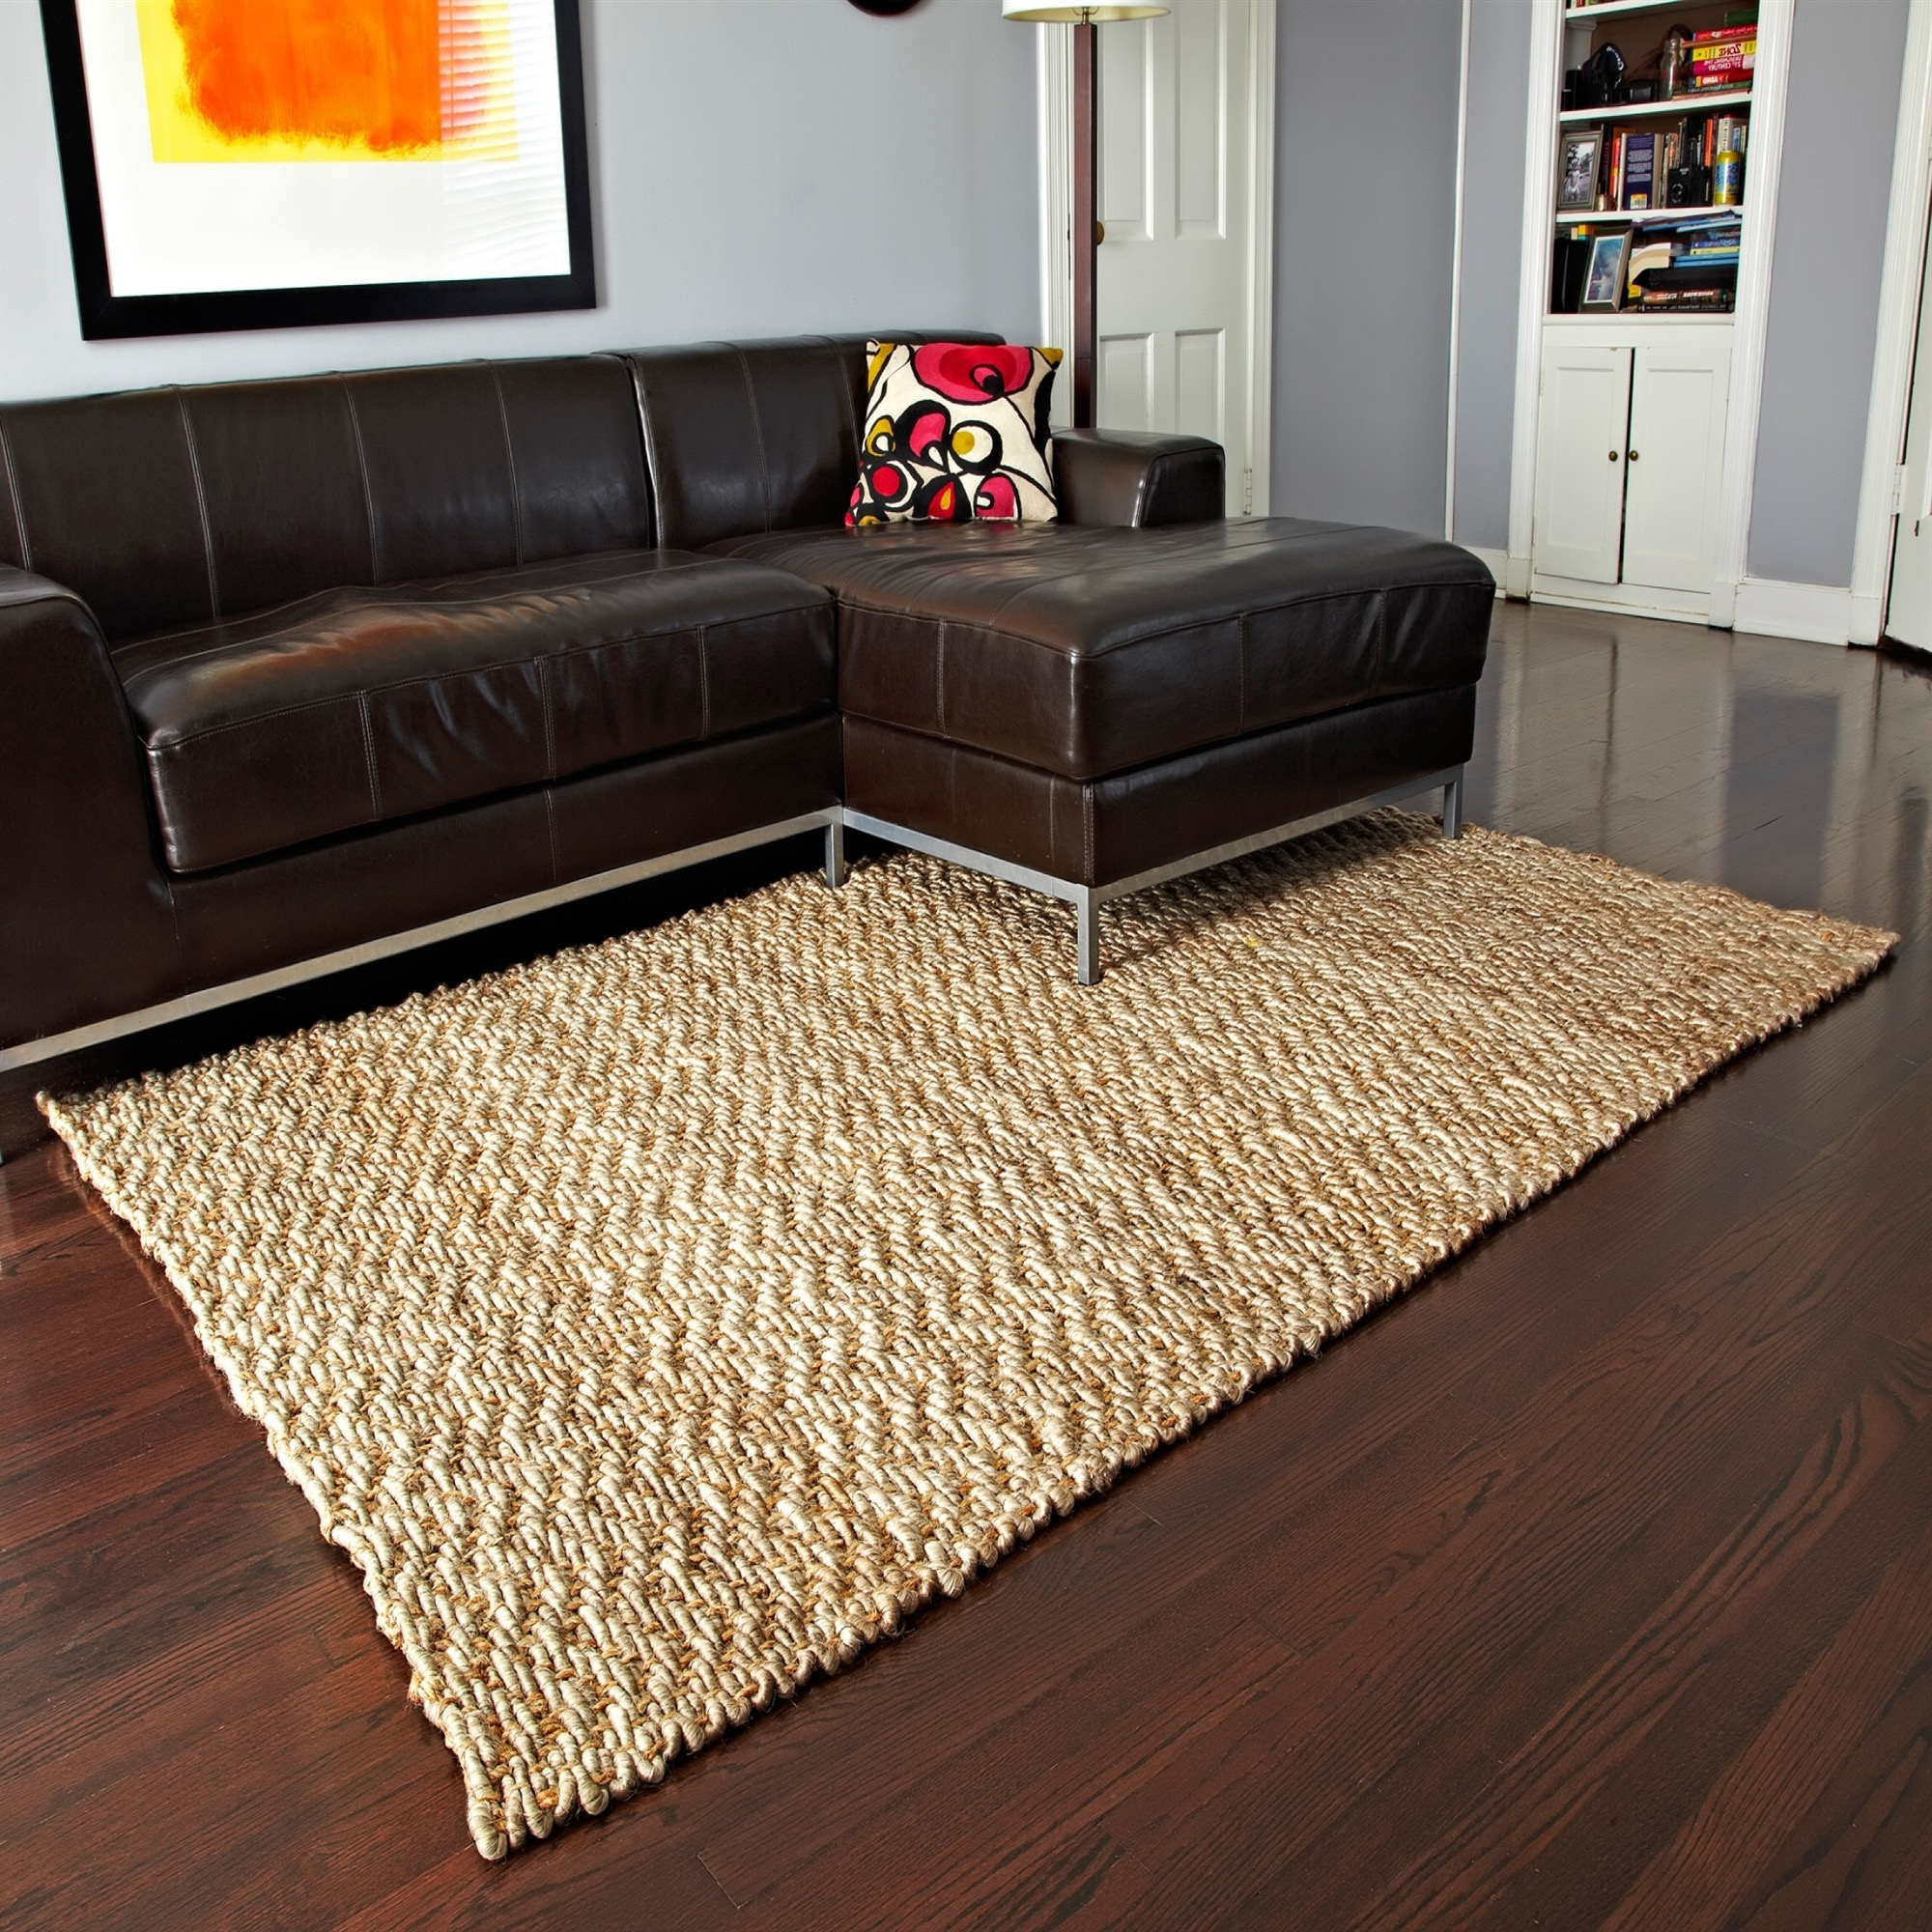 Modern Apartment Living Room Decor With Wood Floor And Square Braided Area Rugs (Image 7 of 15)